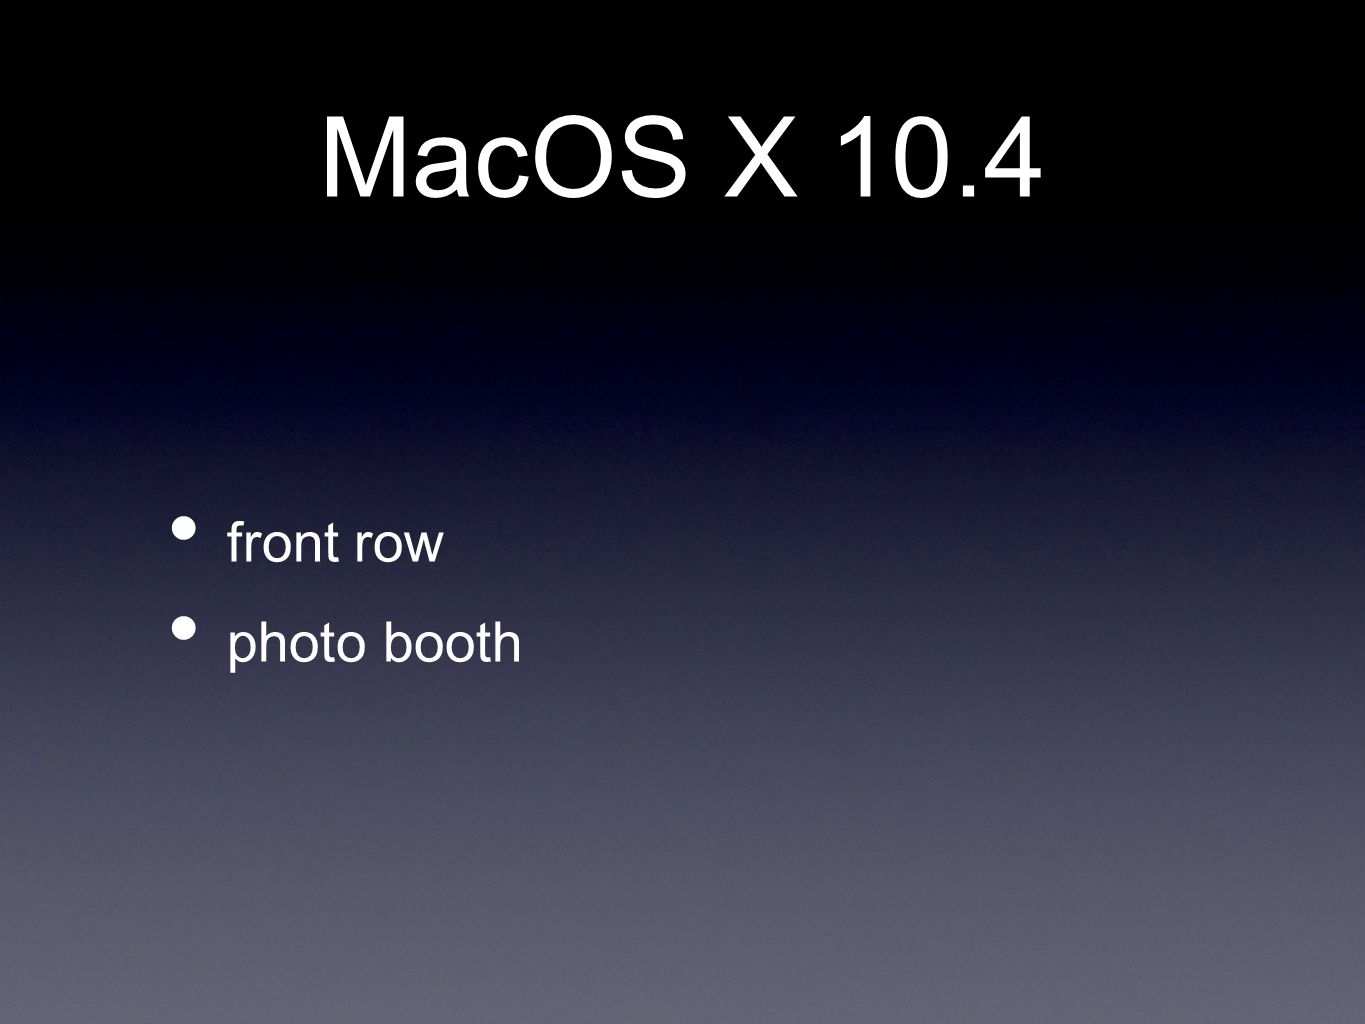 MacOS X 10.4 front row photo booth